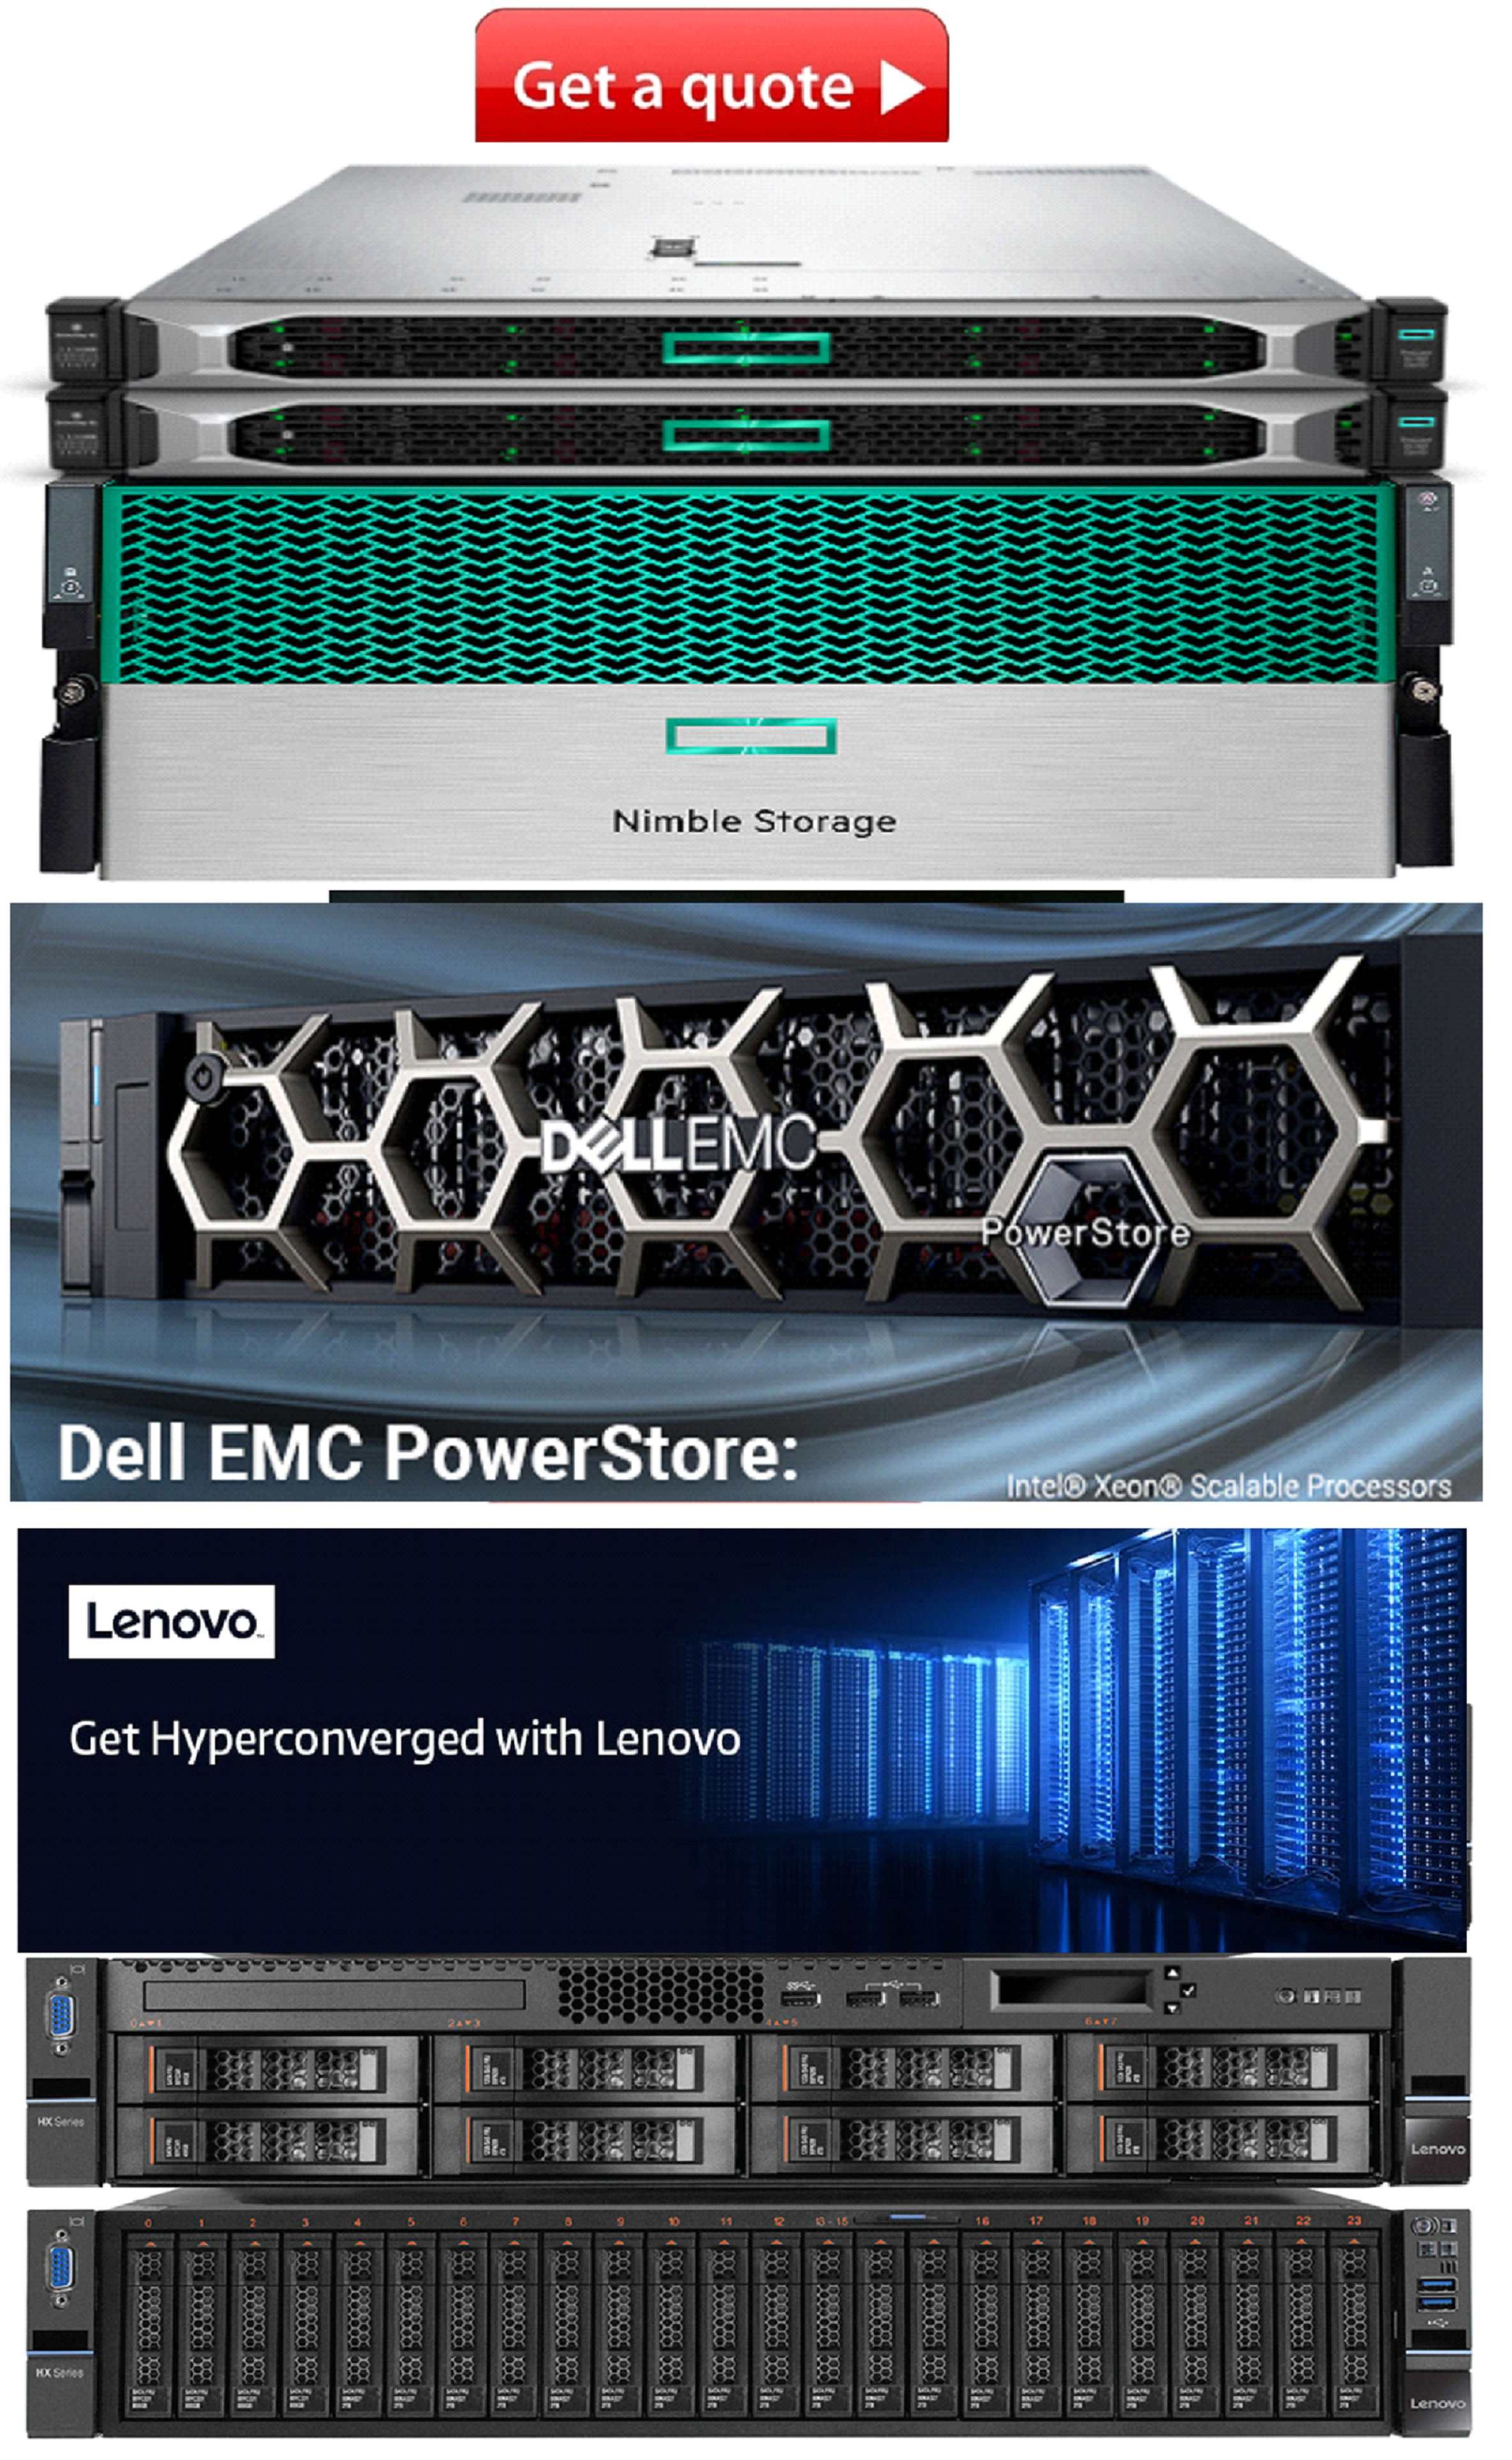 HPE Nimble Storage and drives